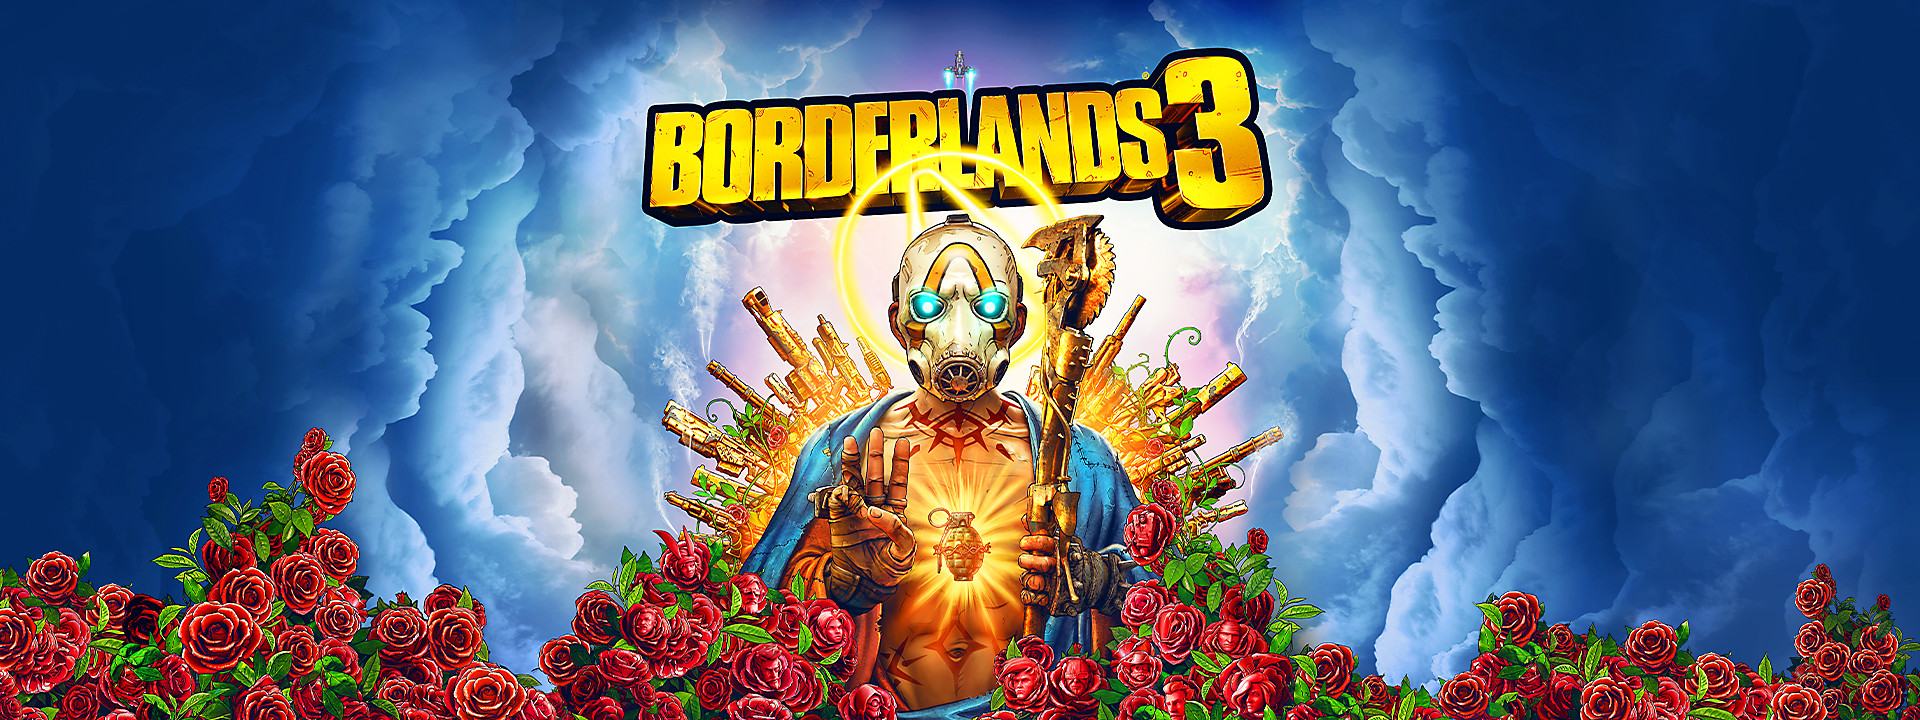 Borderlands 3 - Available Now